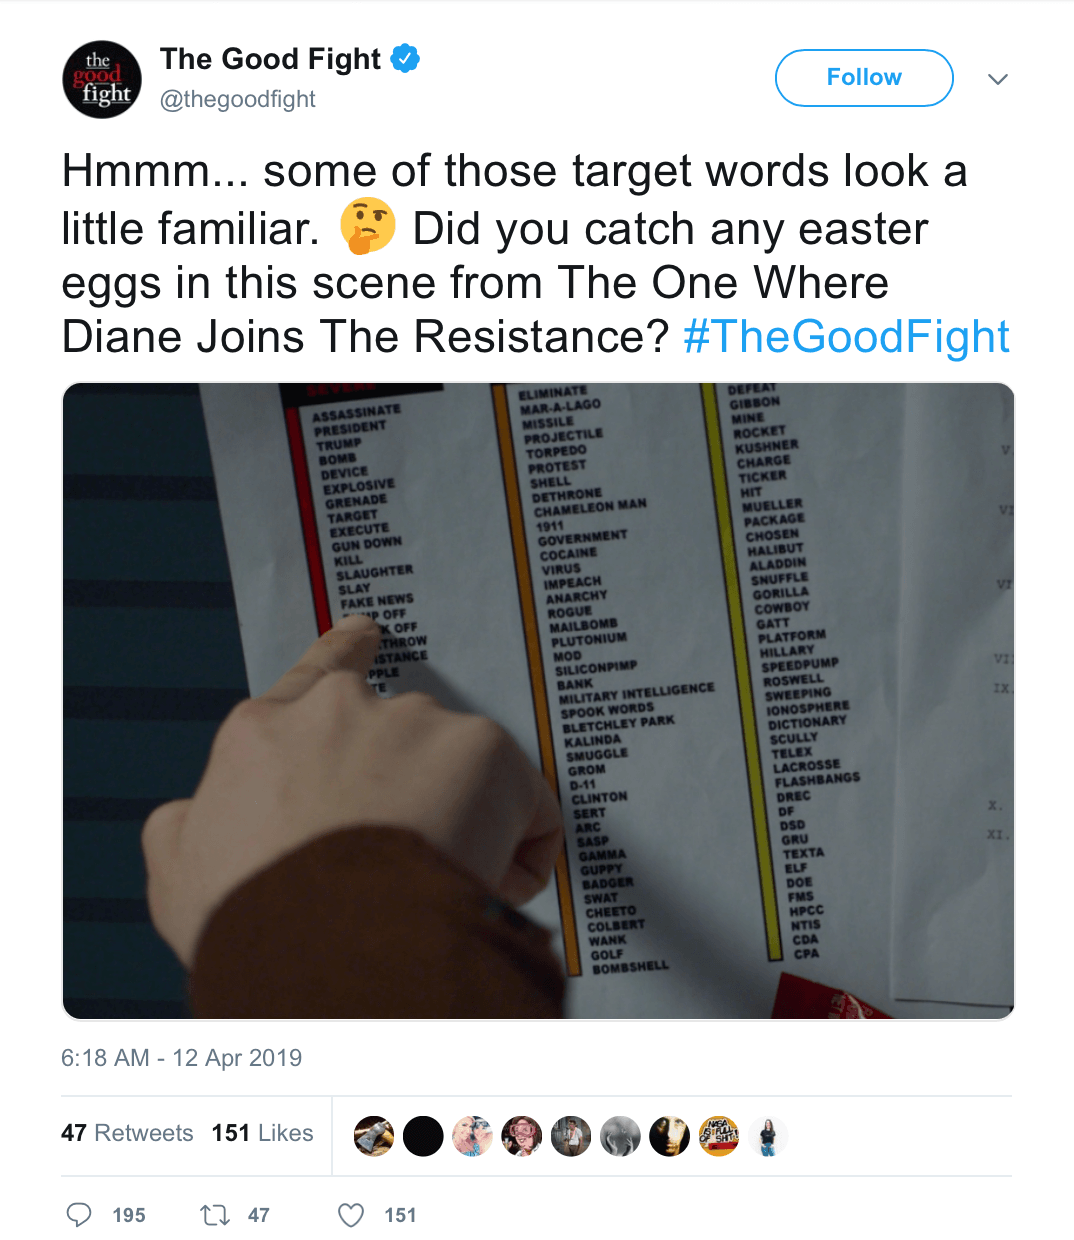 CBS Drama 'The Good Fight' Tweet with 'Assassinate Trump' Sparks Calls for Secret Service Investigation